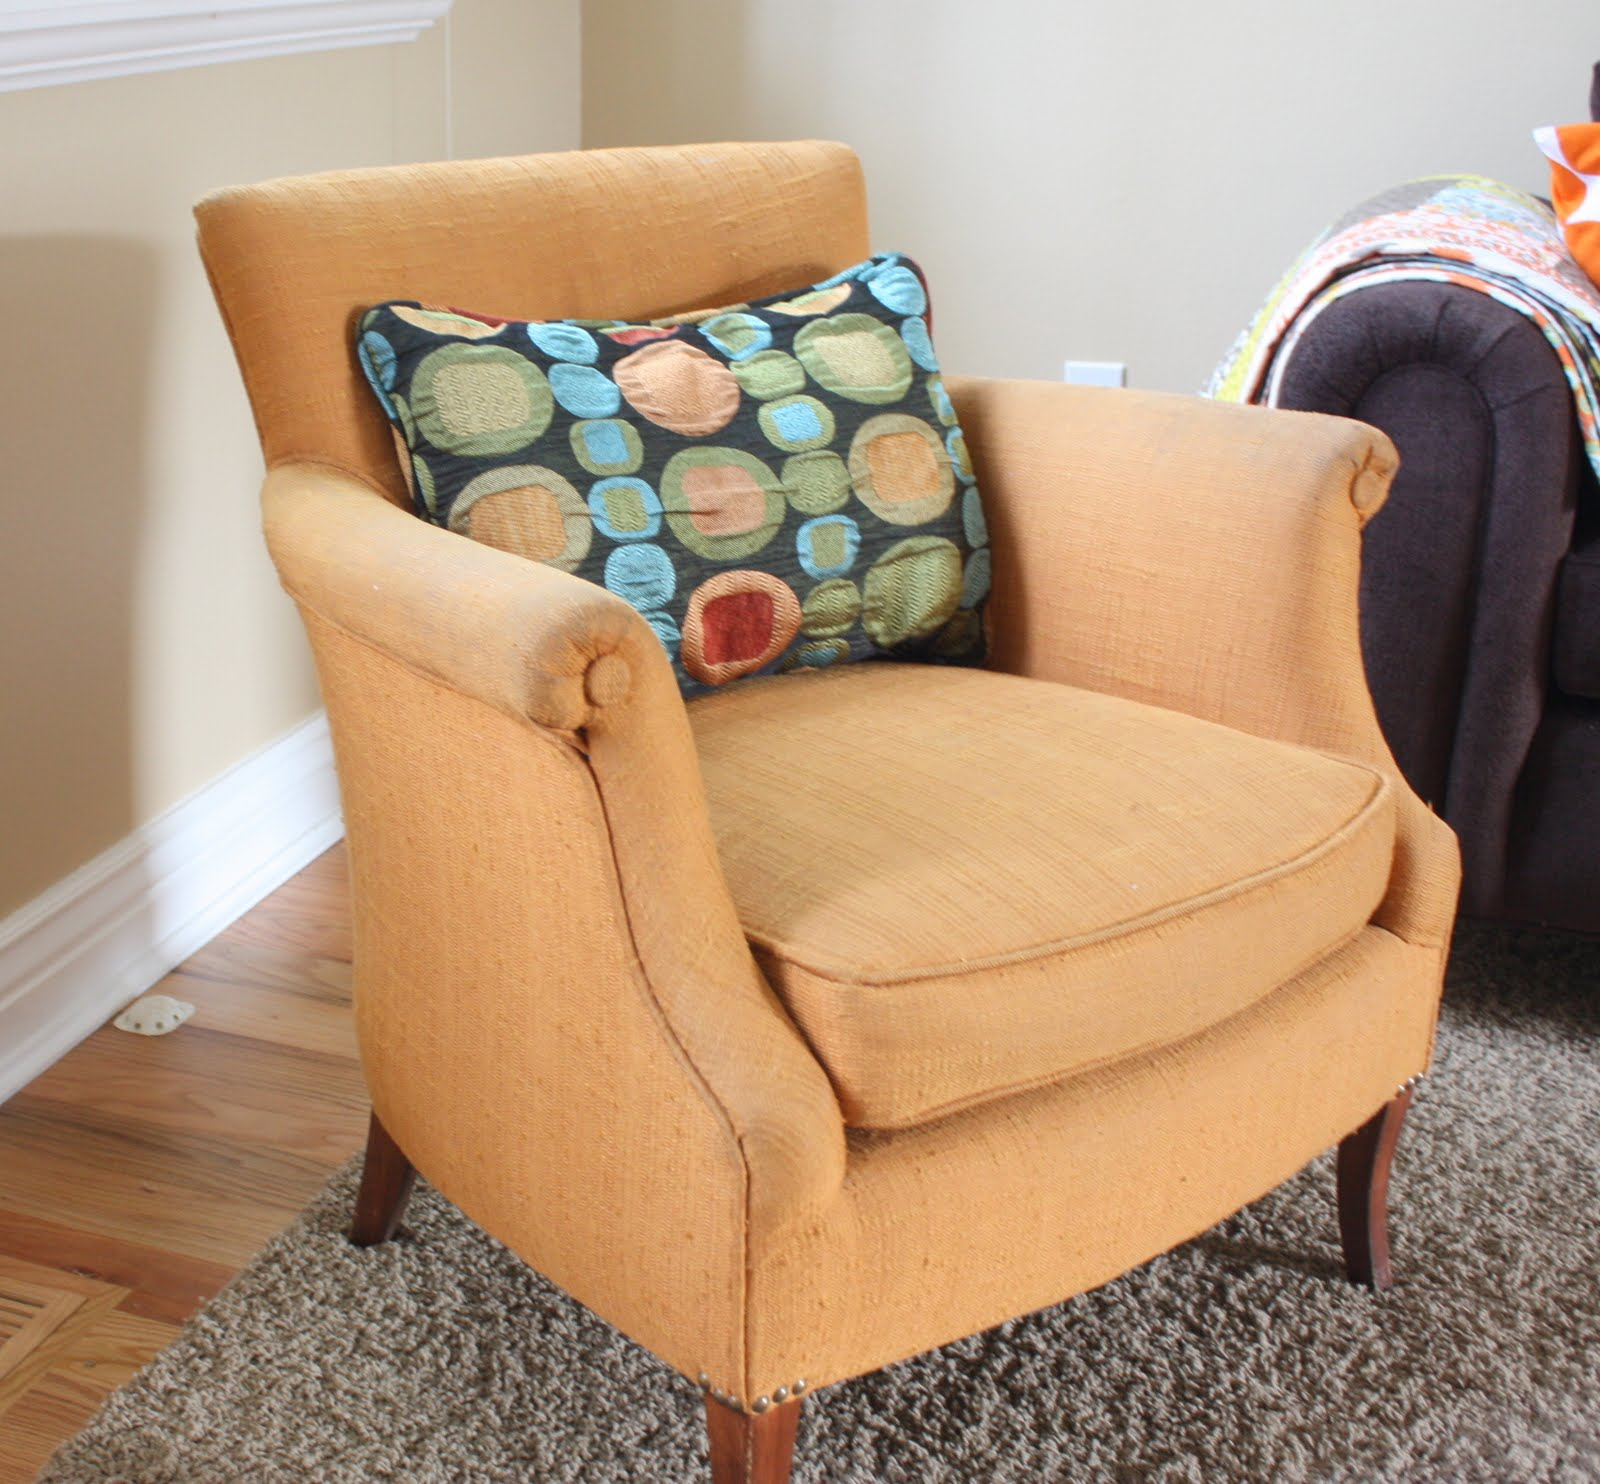 Second Hand Living Room Diary Of A Quilter A Quilt Blog